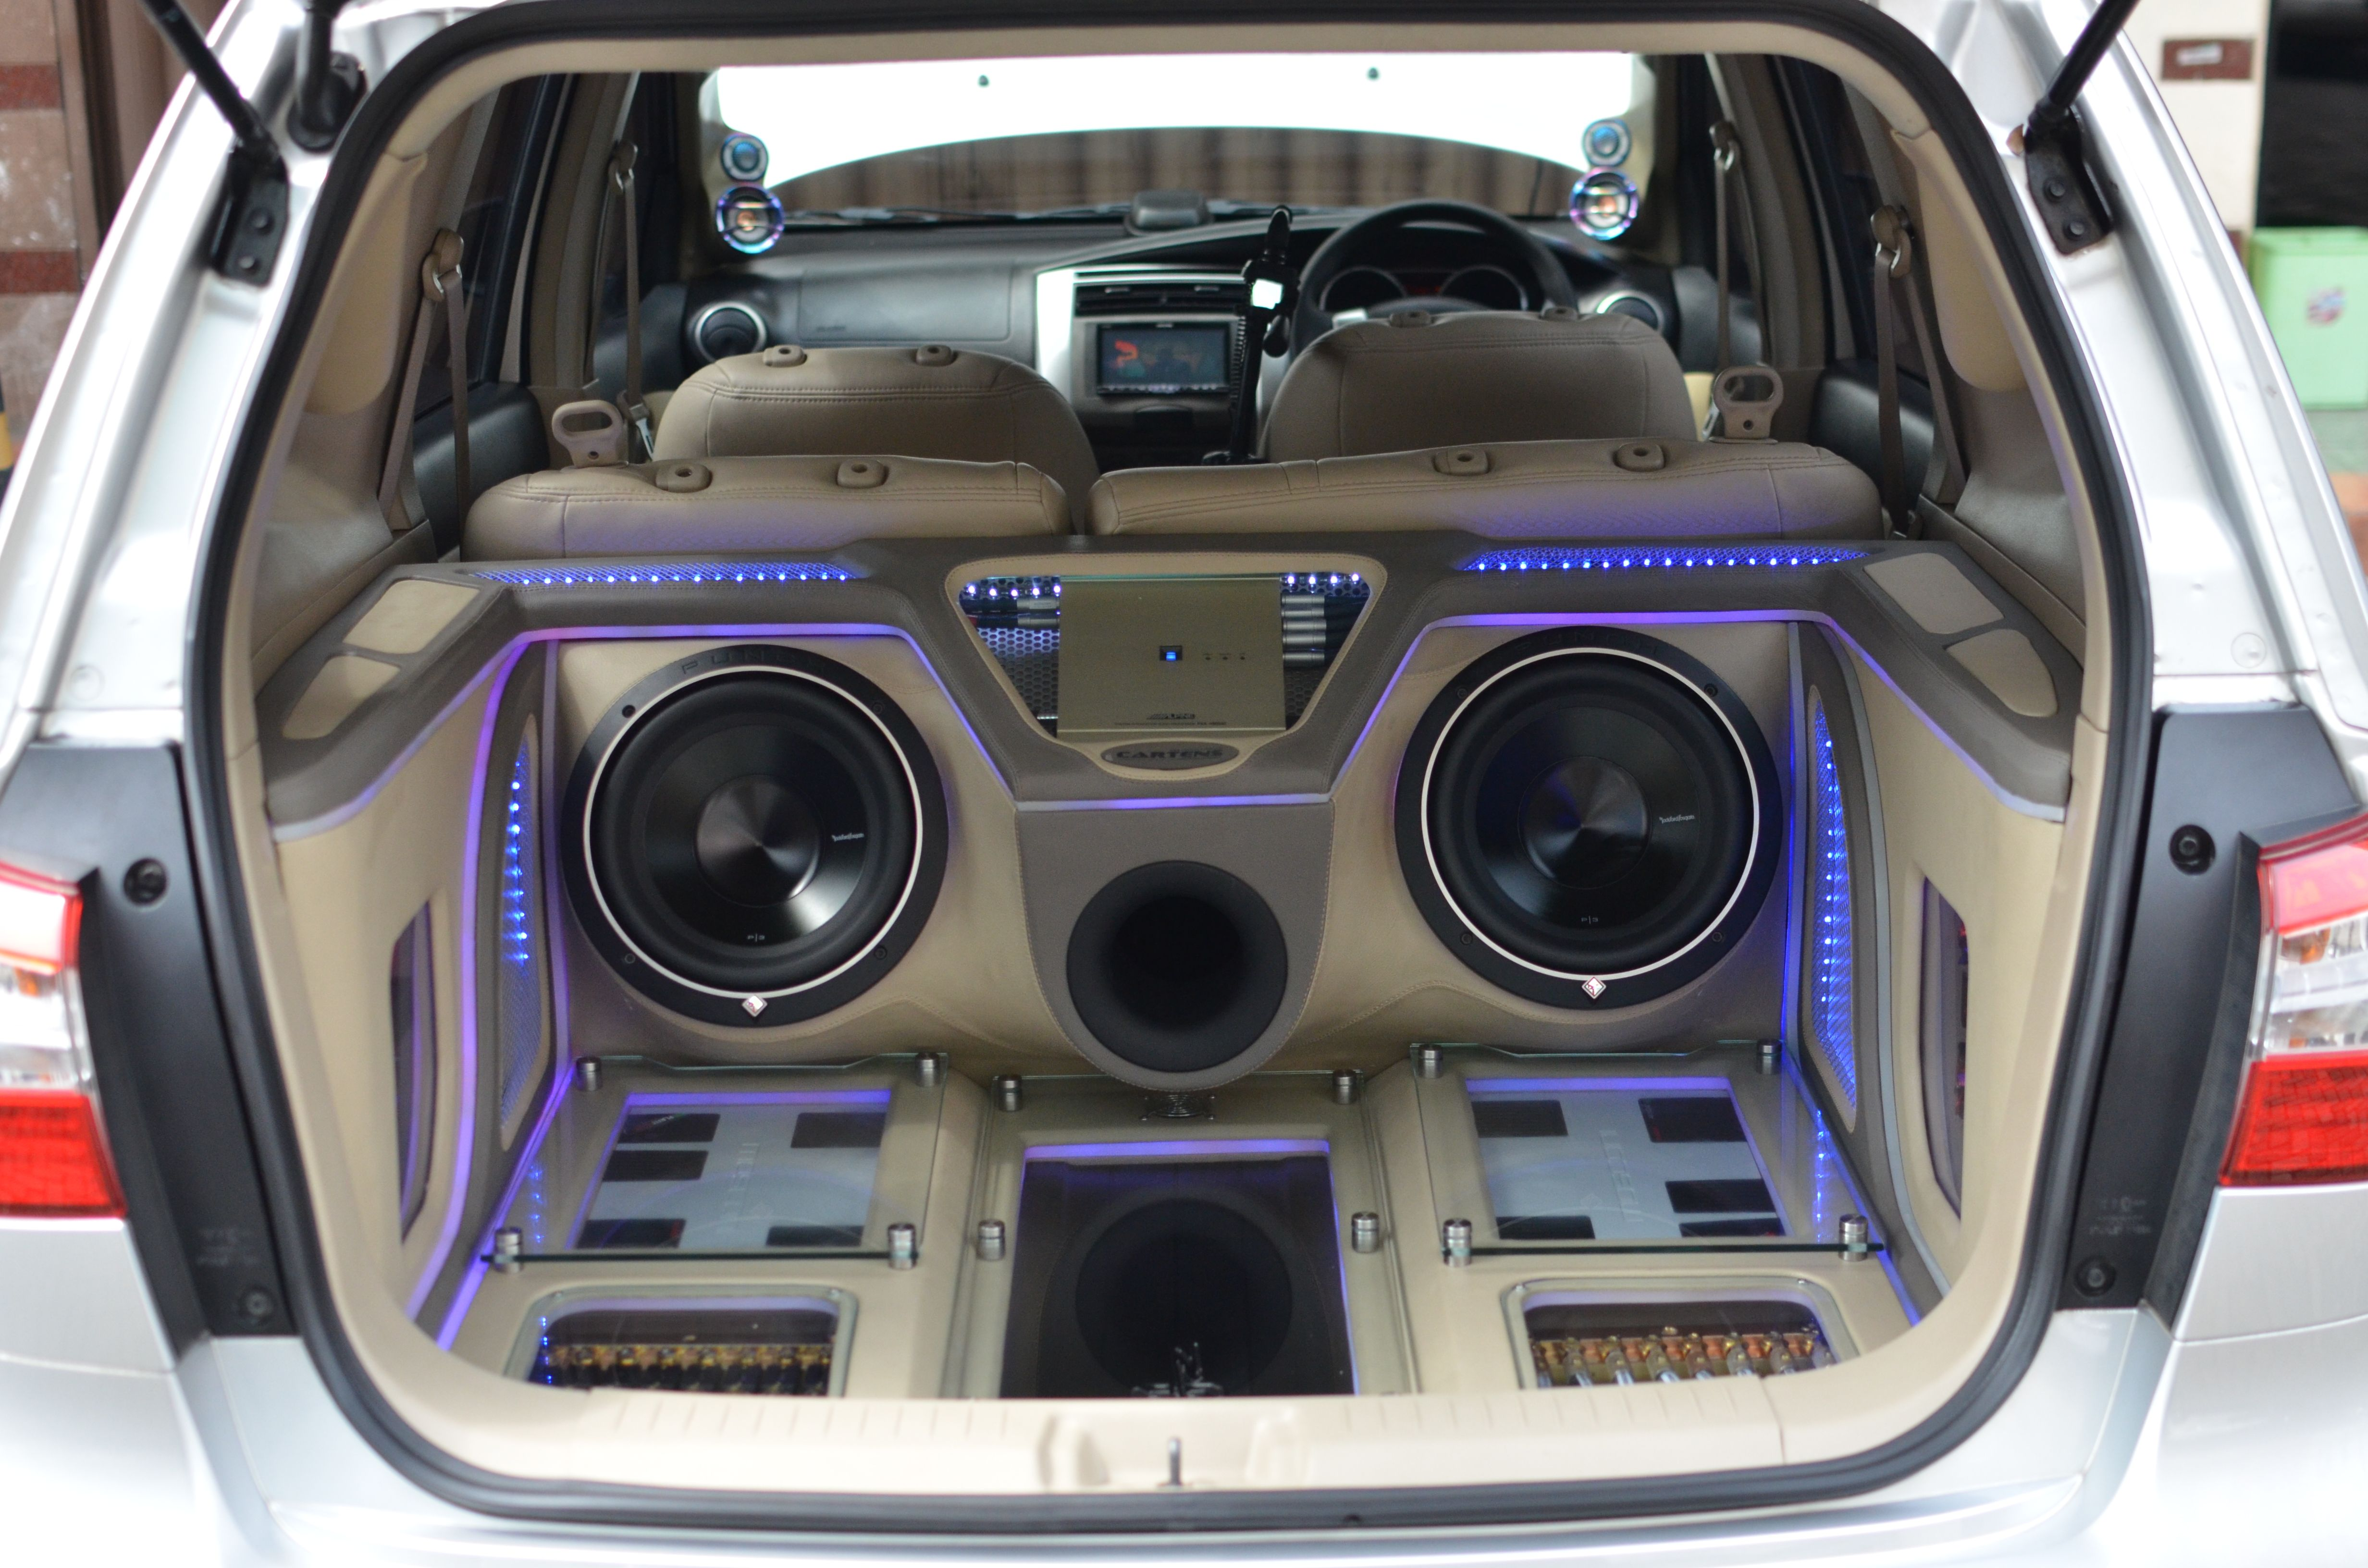 Nissan Grand Livina Indonesia Multimedia 51 Champion By Www How To Half Manual Power Window Zilvianet Forums Cartens Audiocom